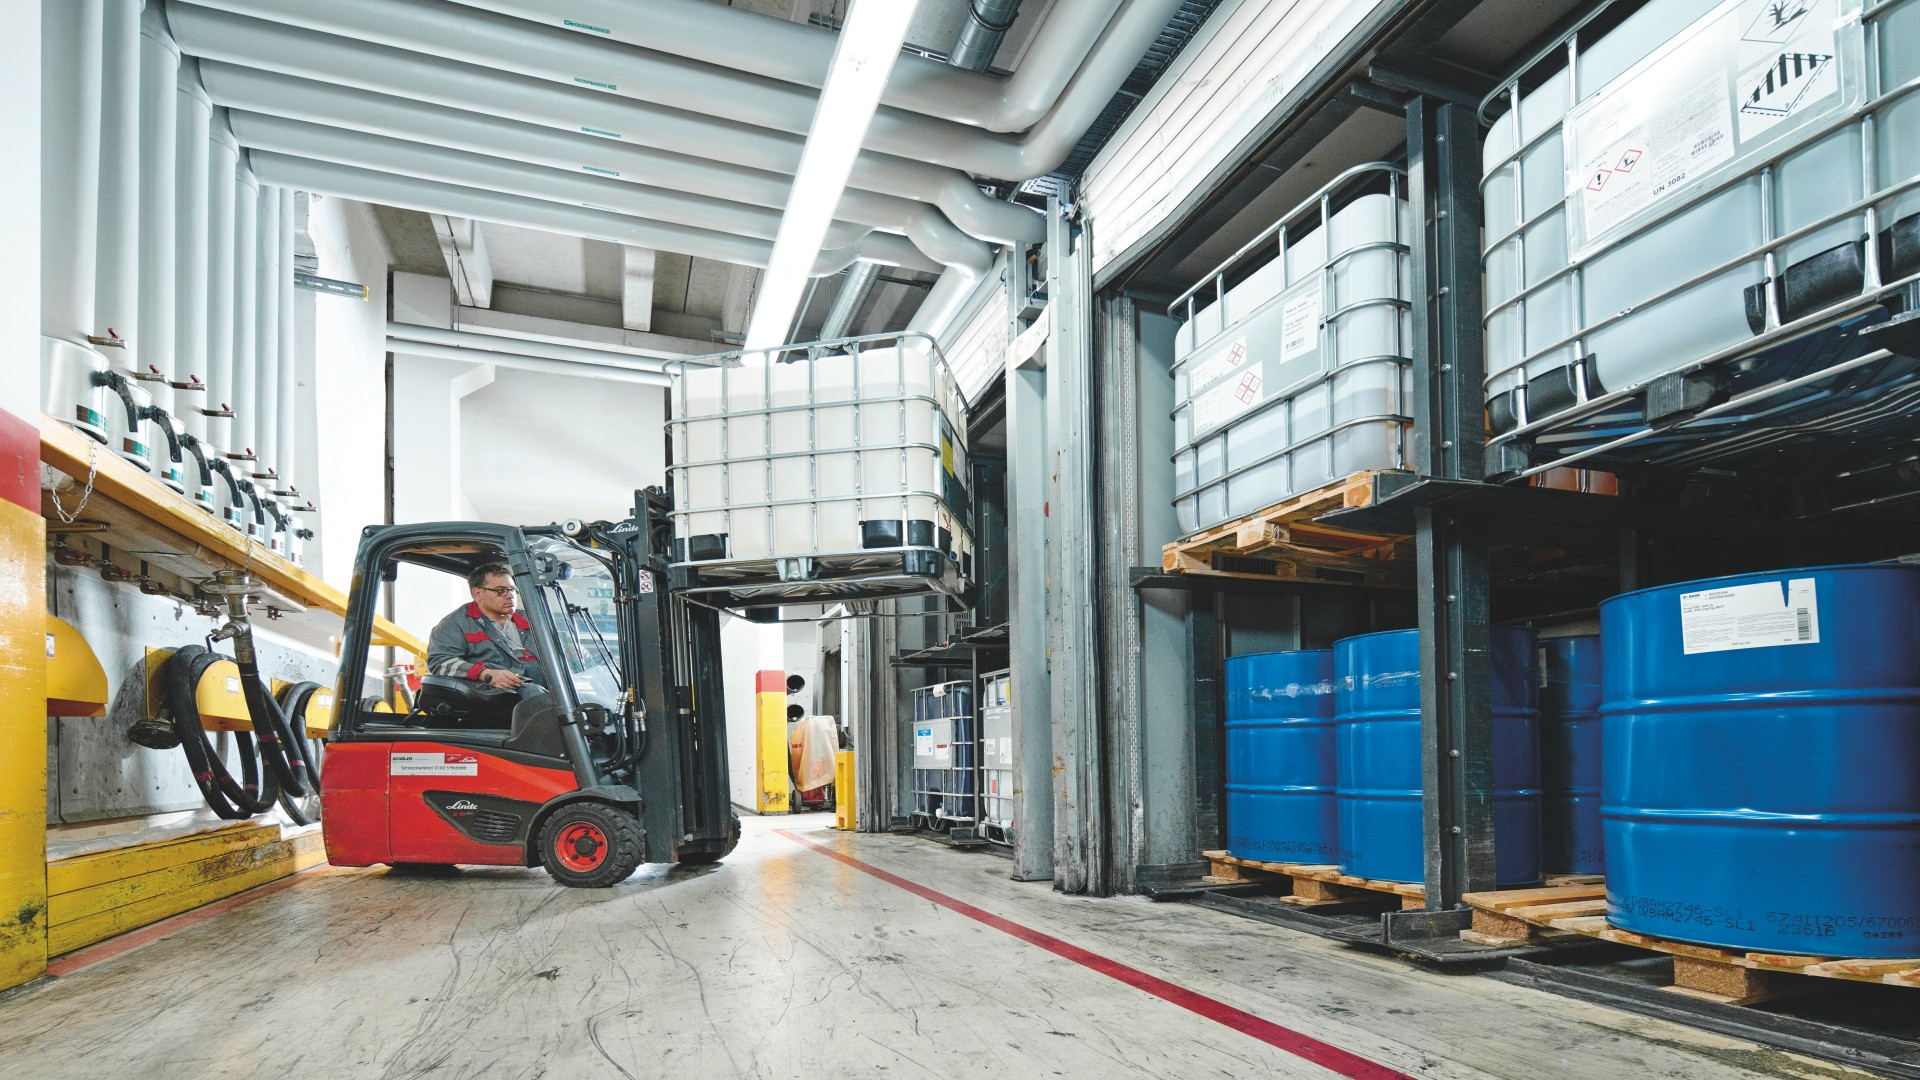 Linde electric forklift truck in use at Sika Deutschland GmbH